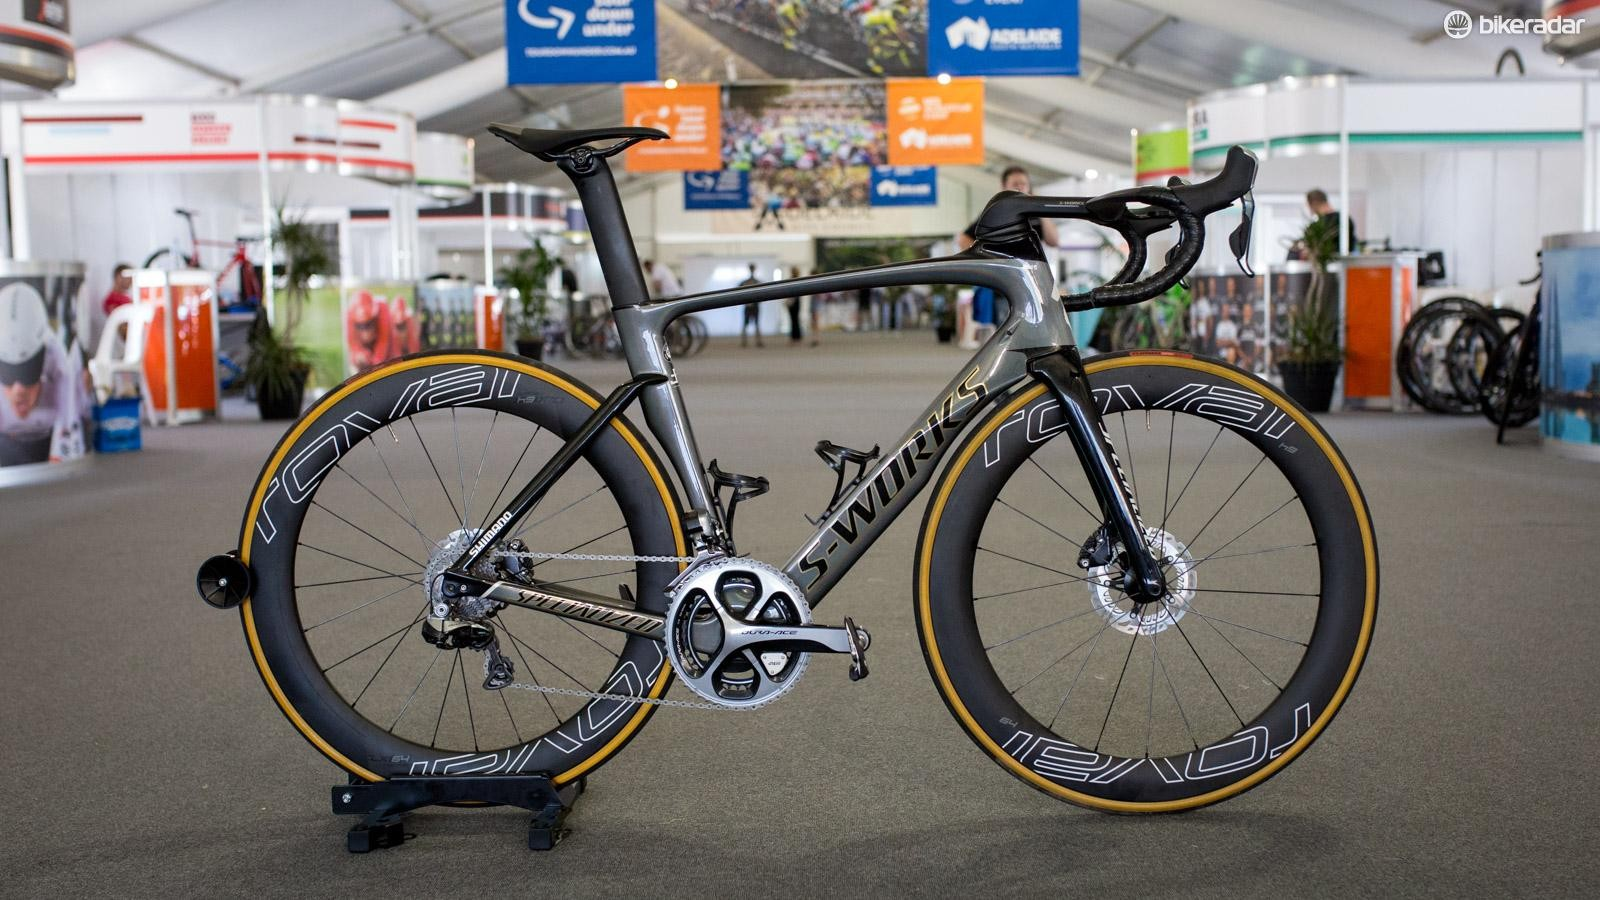 Peter Sagan's custom Specialized S-Works Venge ViAS disc